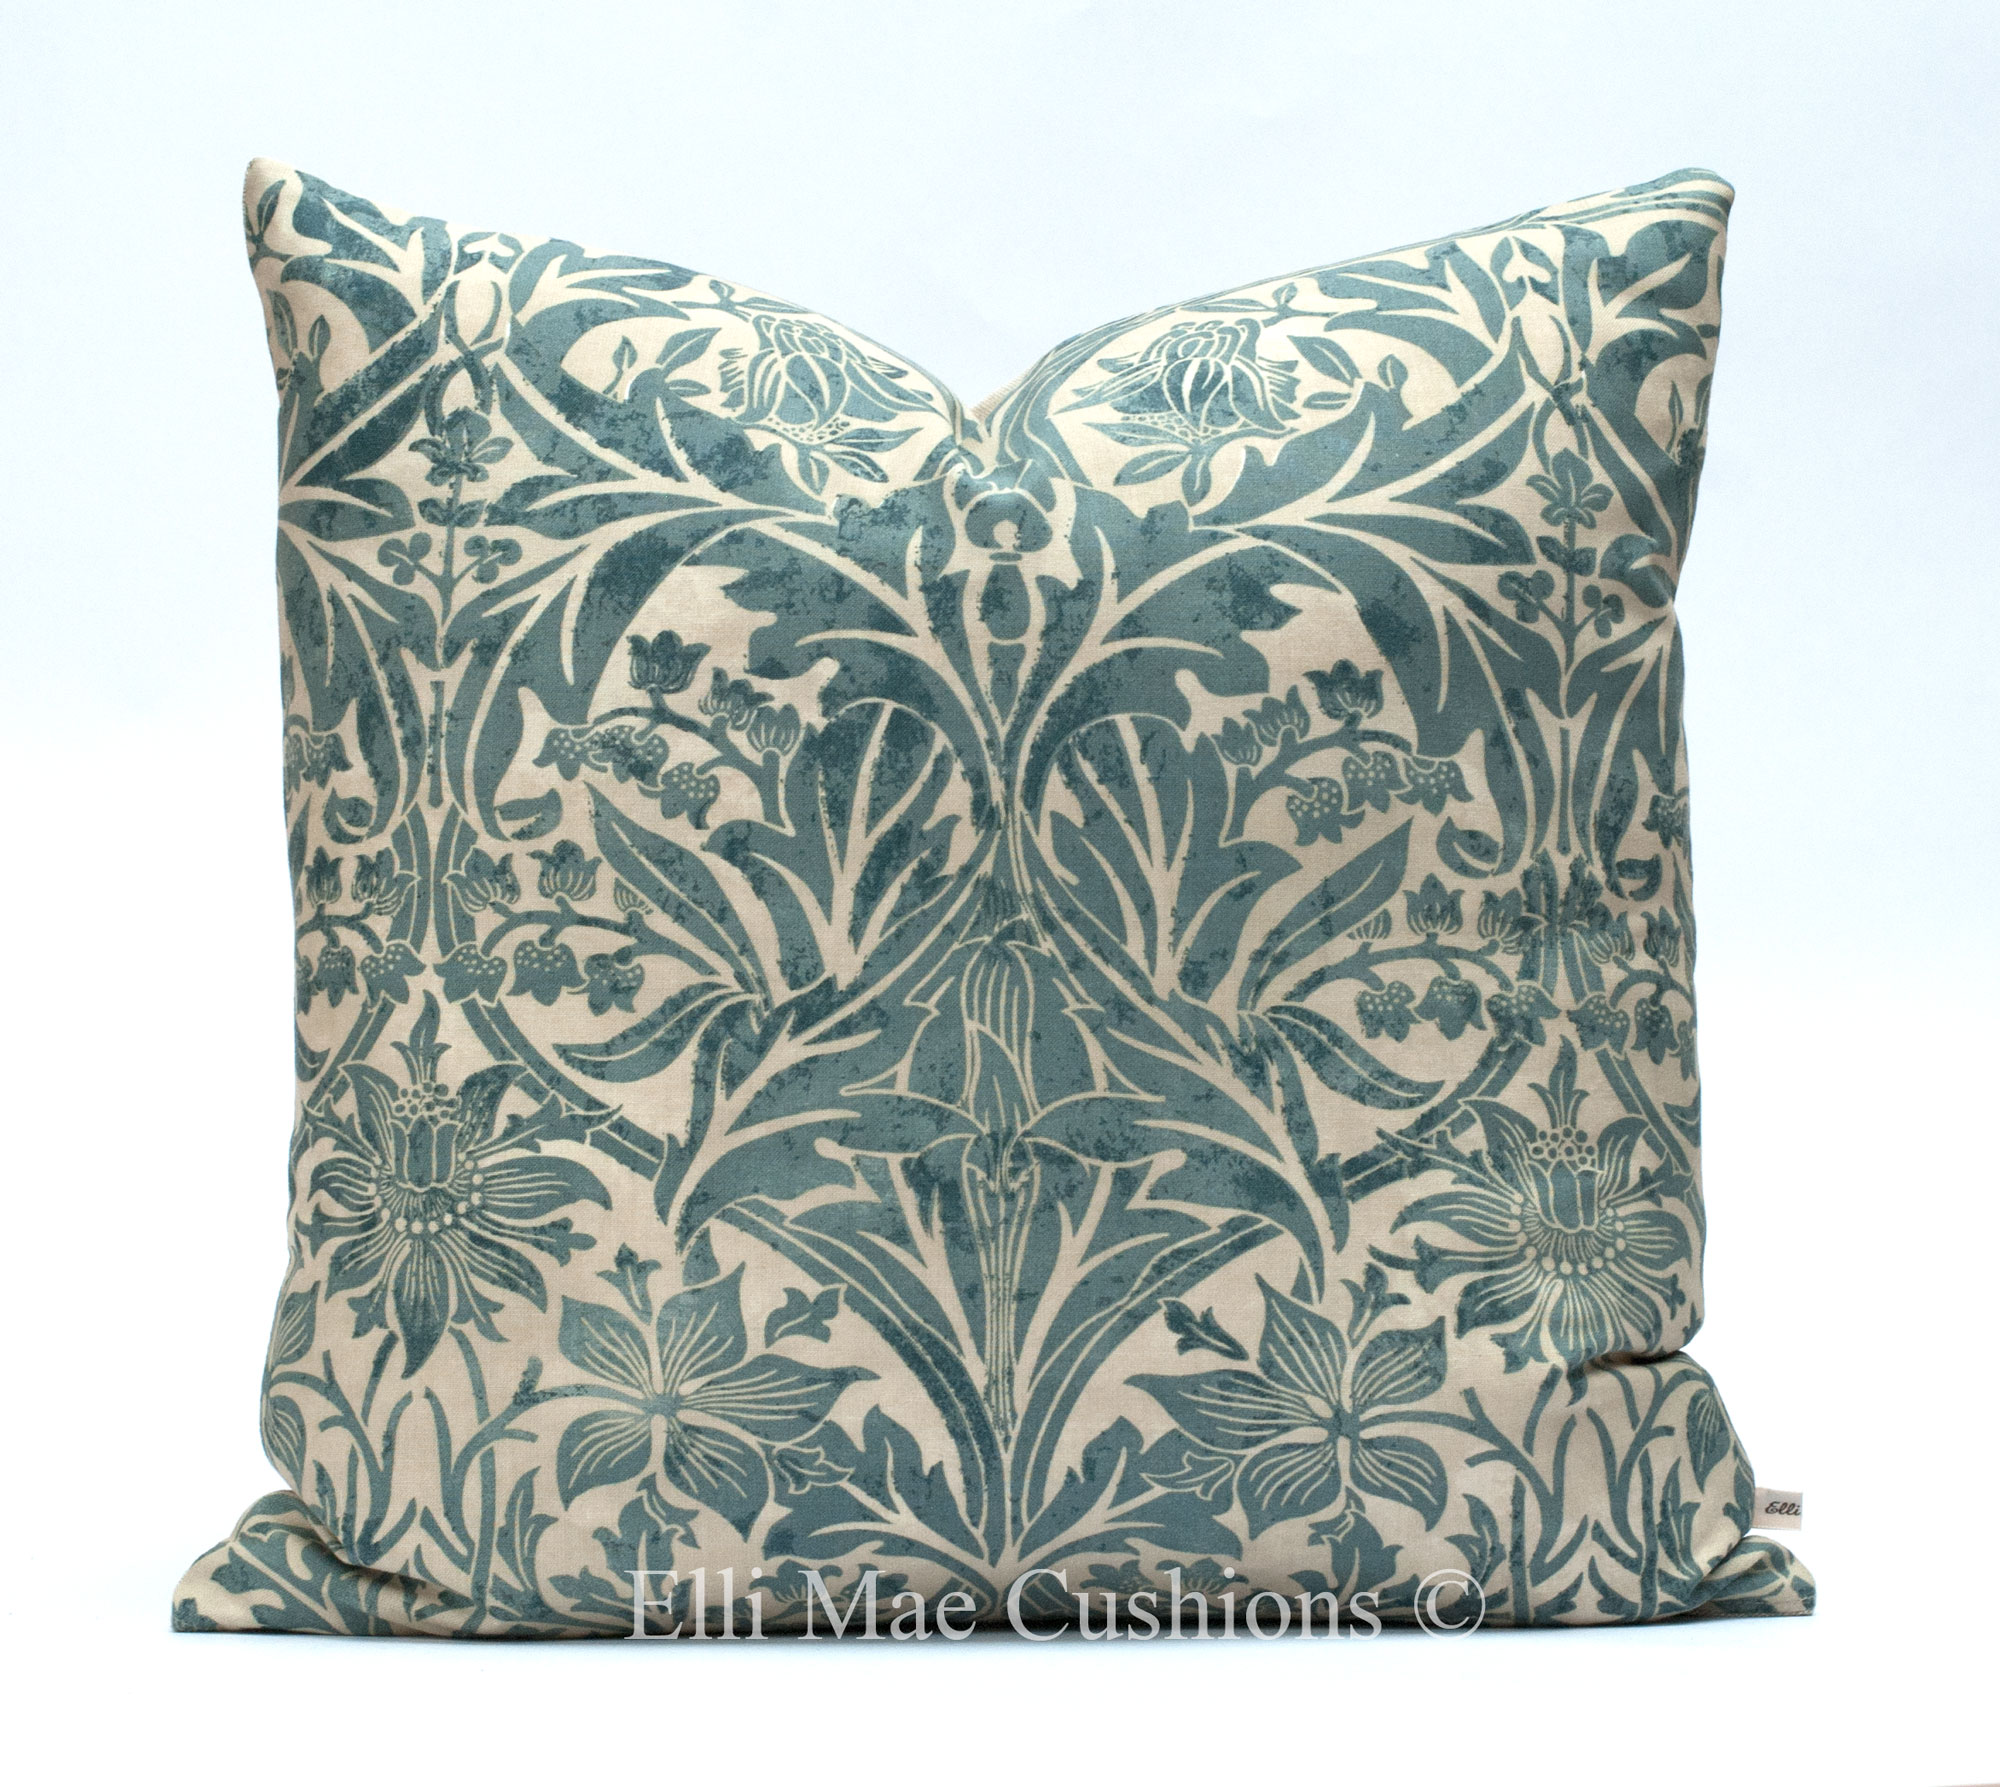 william morris bluebell blue cotton fabric vintage cushion cover throw pillow